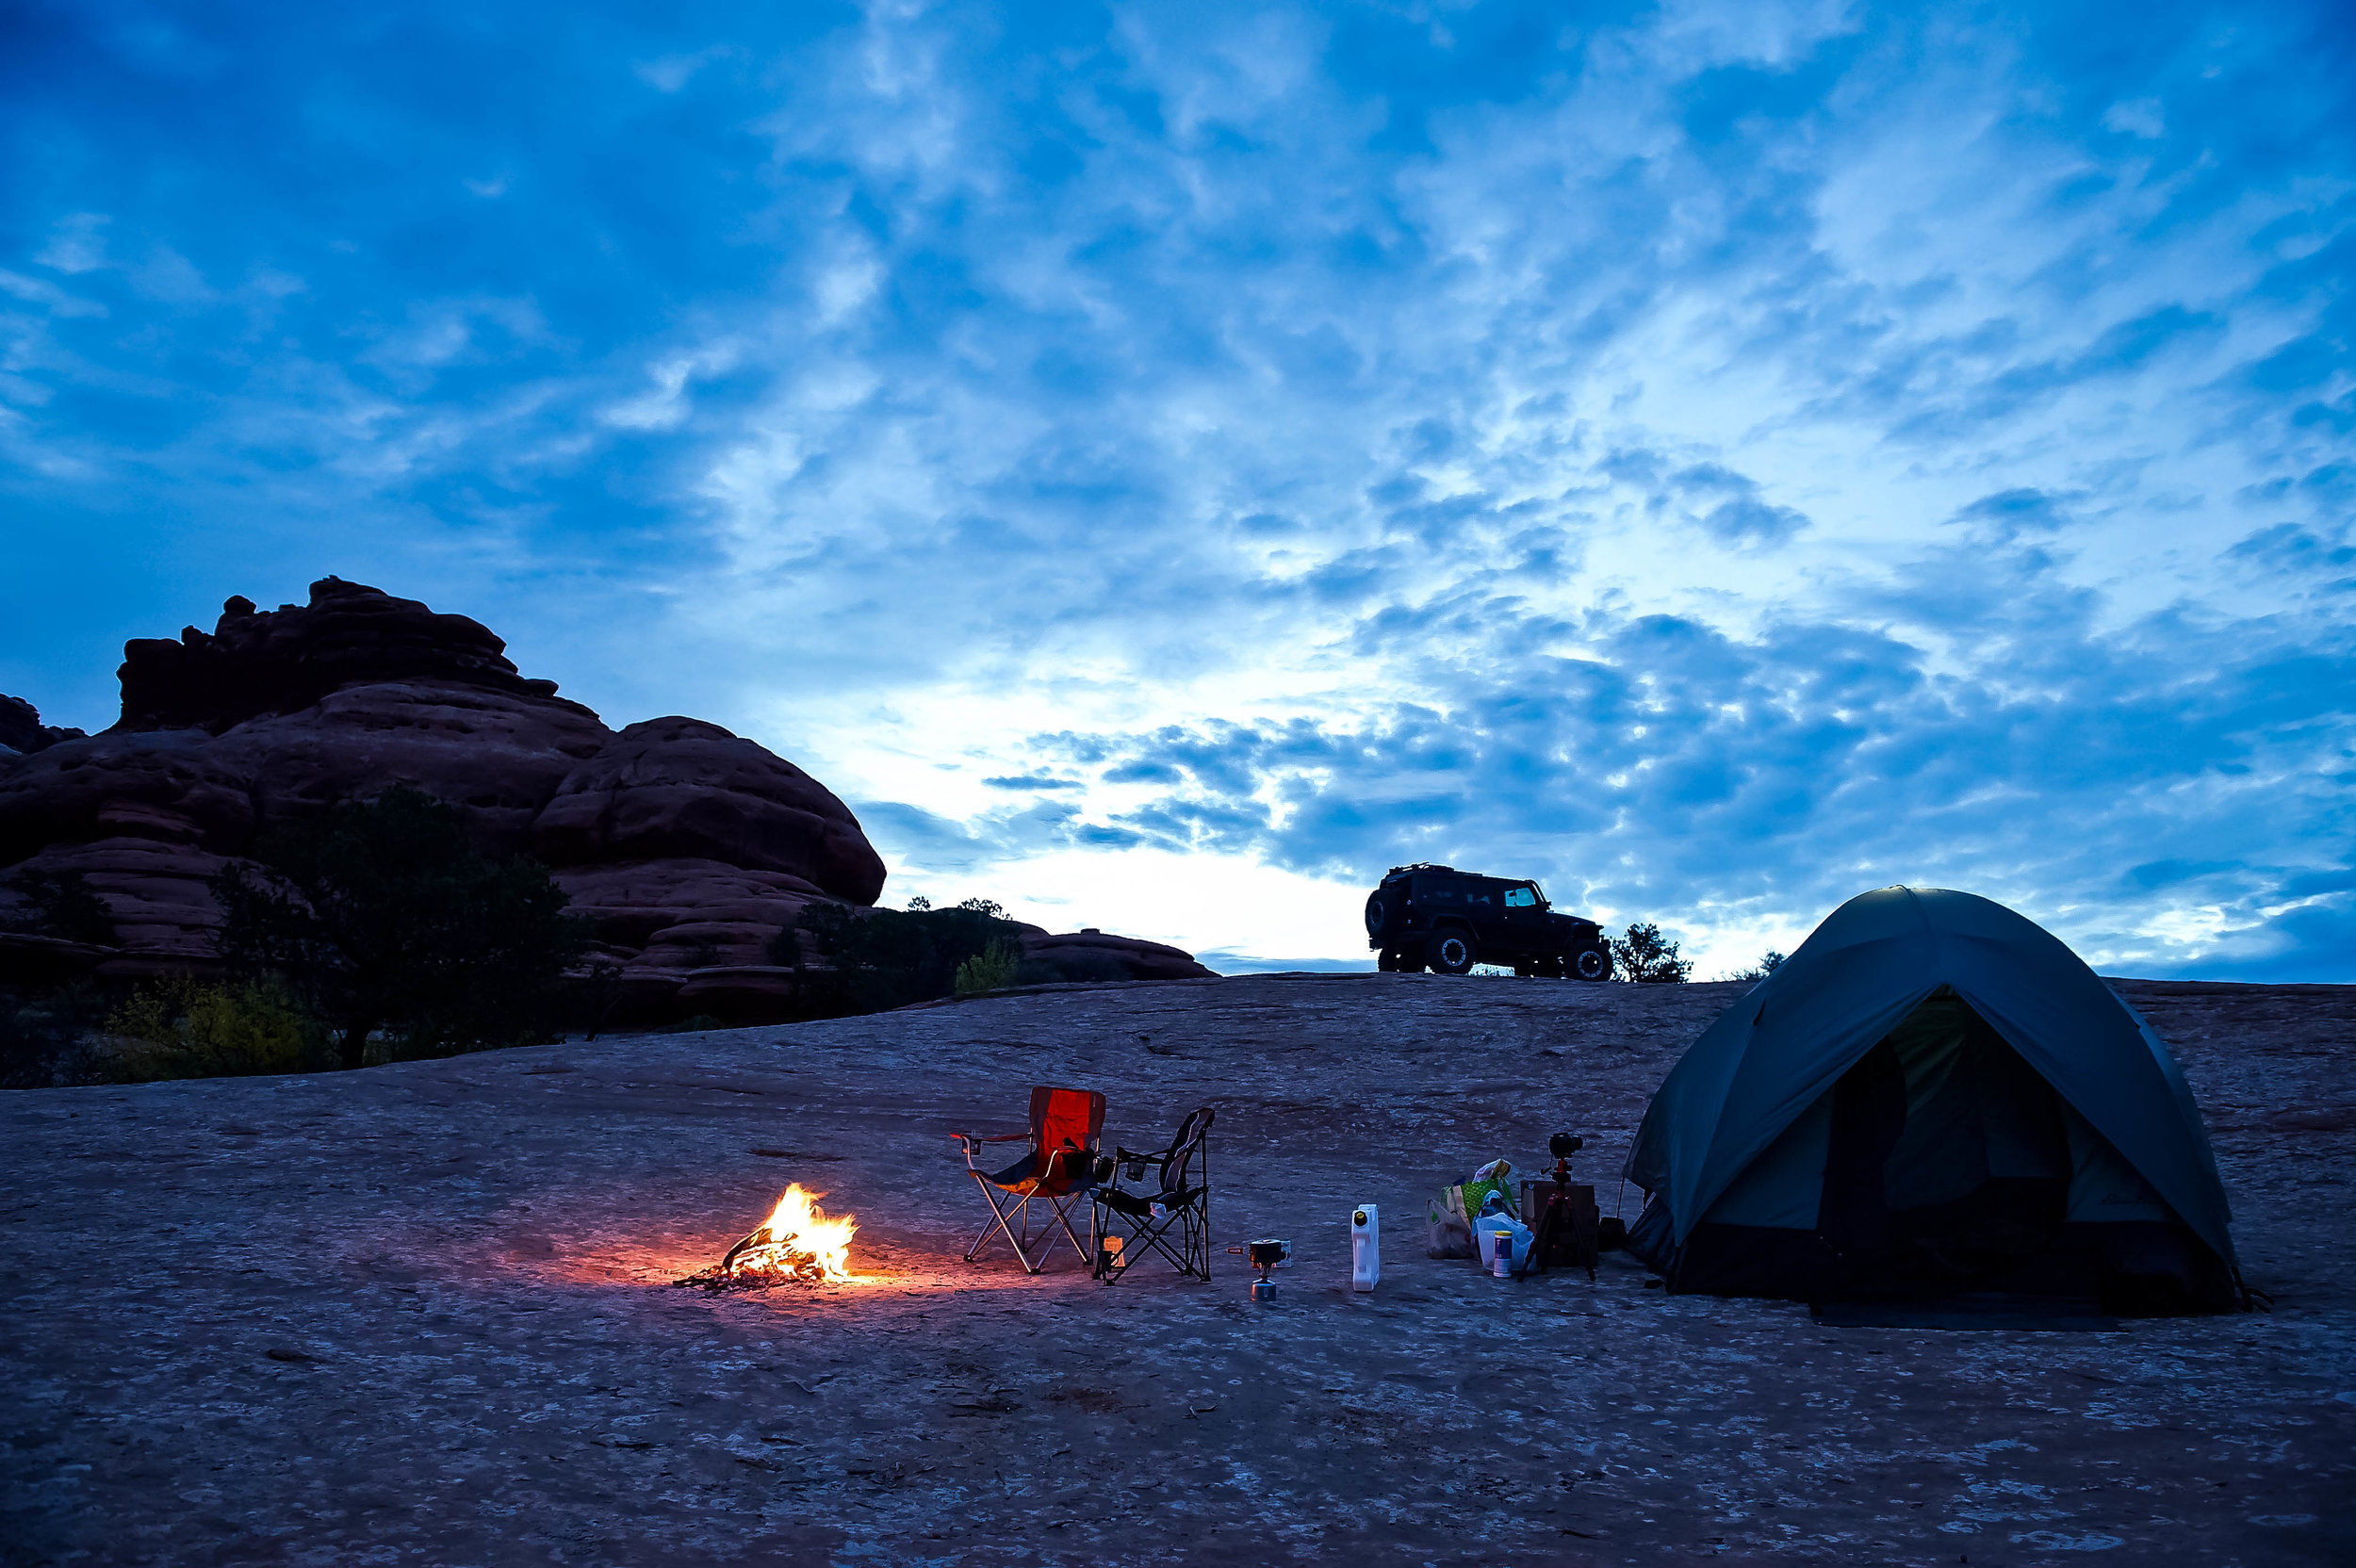 Pre-dawn camp, another adventure awaits…